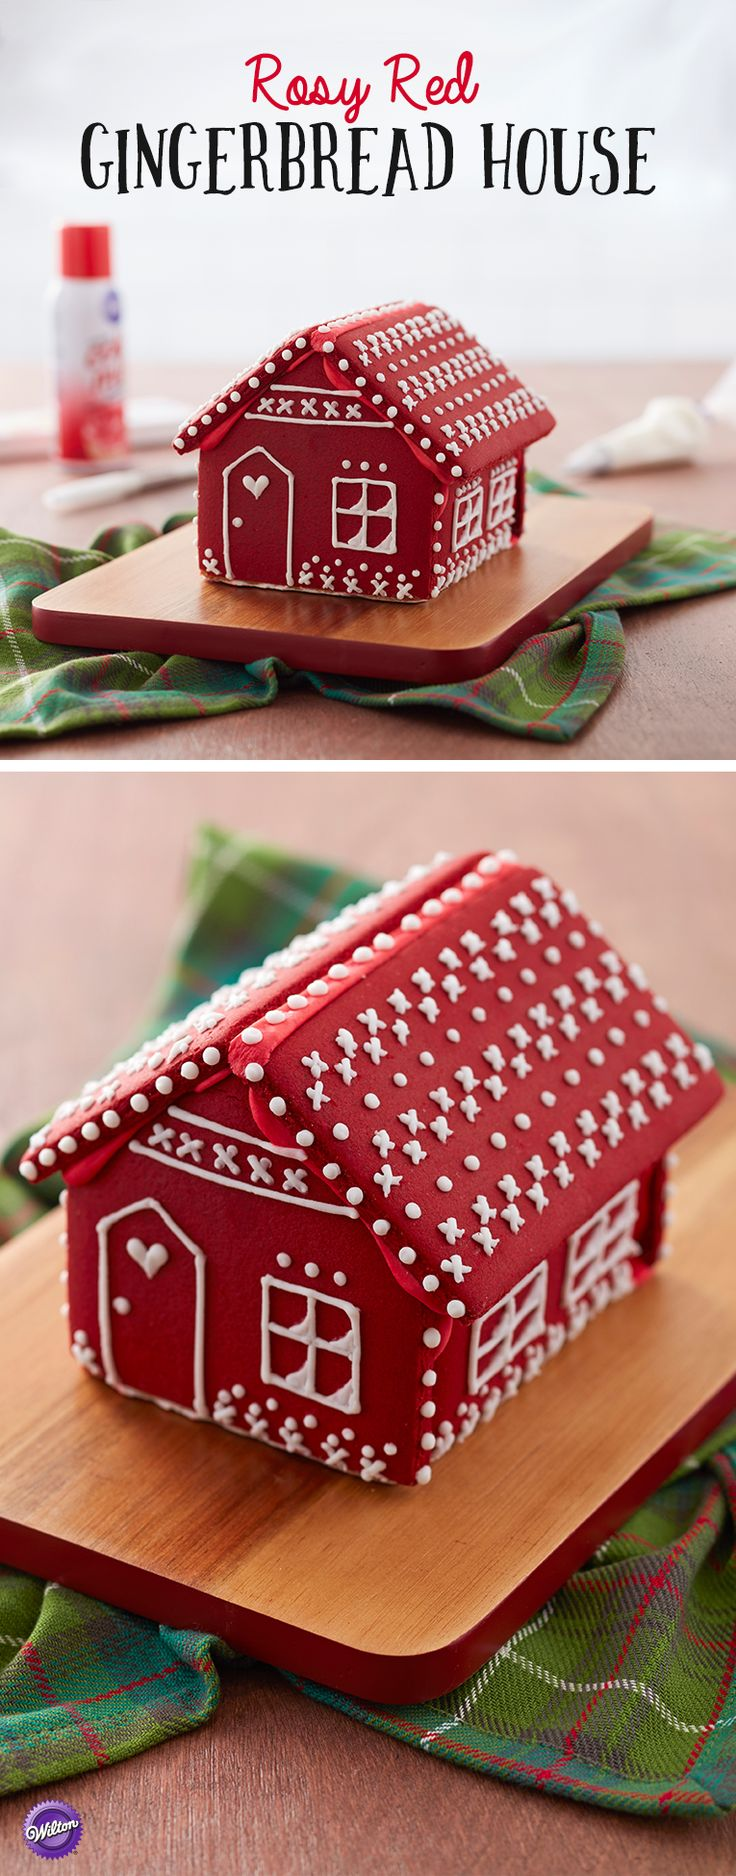 Rosy Red Gingerbread House - Decorating a gingerbread house can be as easy as giving it a few coats of color! Spray your gingerbread house with Color Mist food color spray to create a unique look that is sure to make your decoration stand out! Use edible FoodWriter markers to outline your details then pipe over them with icing for a whimsy and fun Rosy Red Gingerbread House that is sure to be a conversation starter at your holiday gathering.